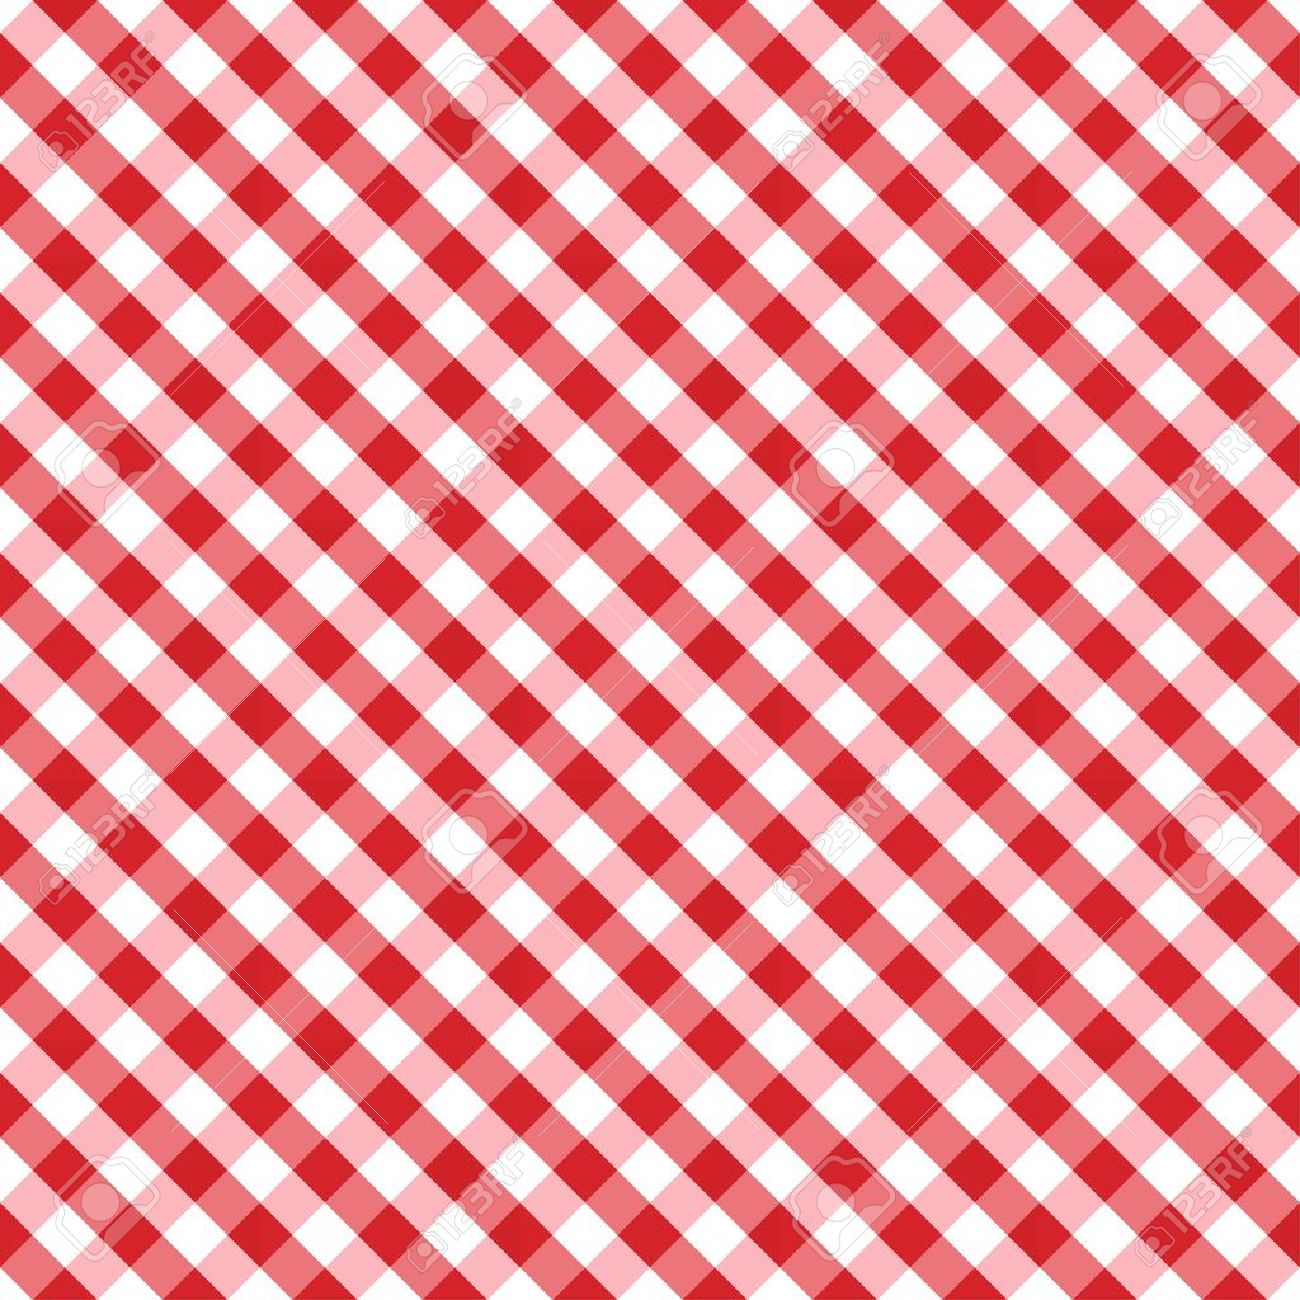 Red and white checkered tablecloth clipart jpg library download Free Pink Tablecloth Cliparts, Download Free Clip Art, Free Clip Art ... jpg library download